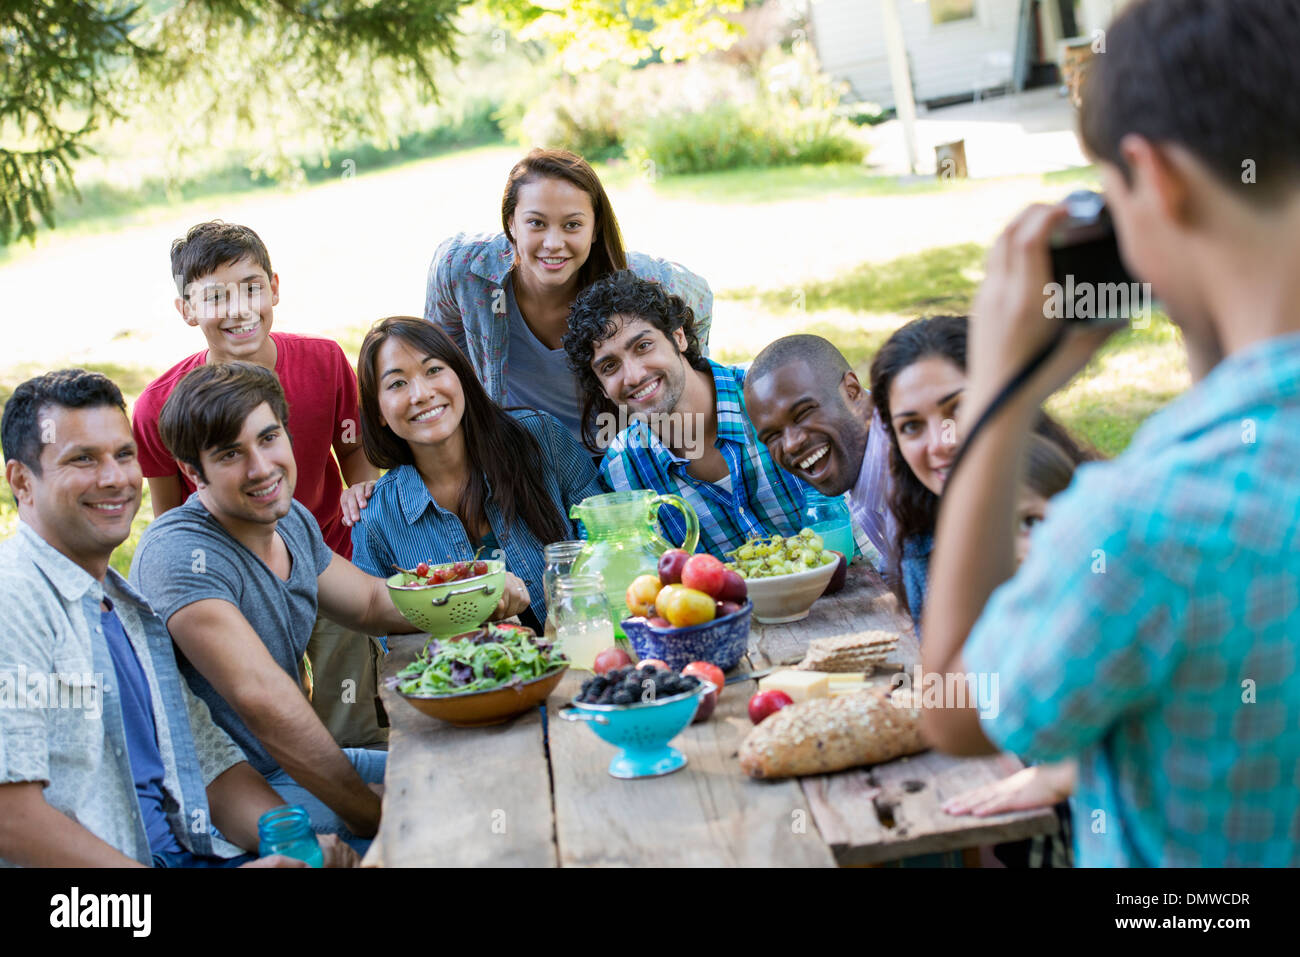 A summer party outdoors. Adults and children posing for a photograph. - Stock Image